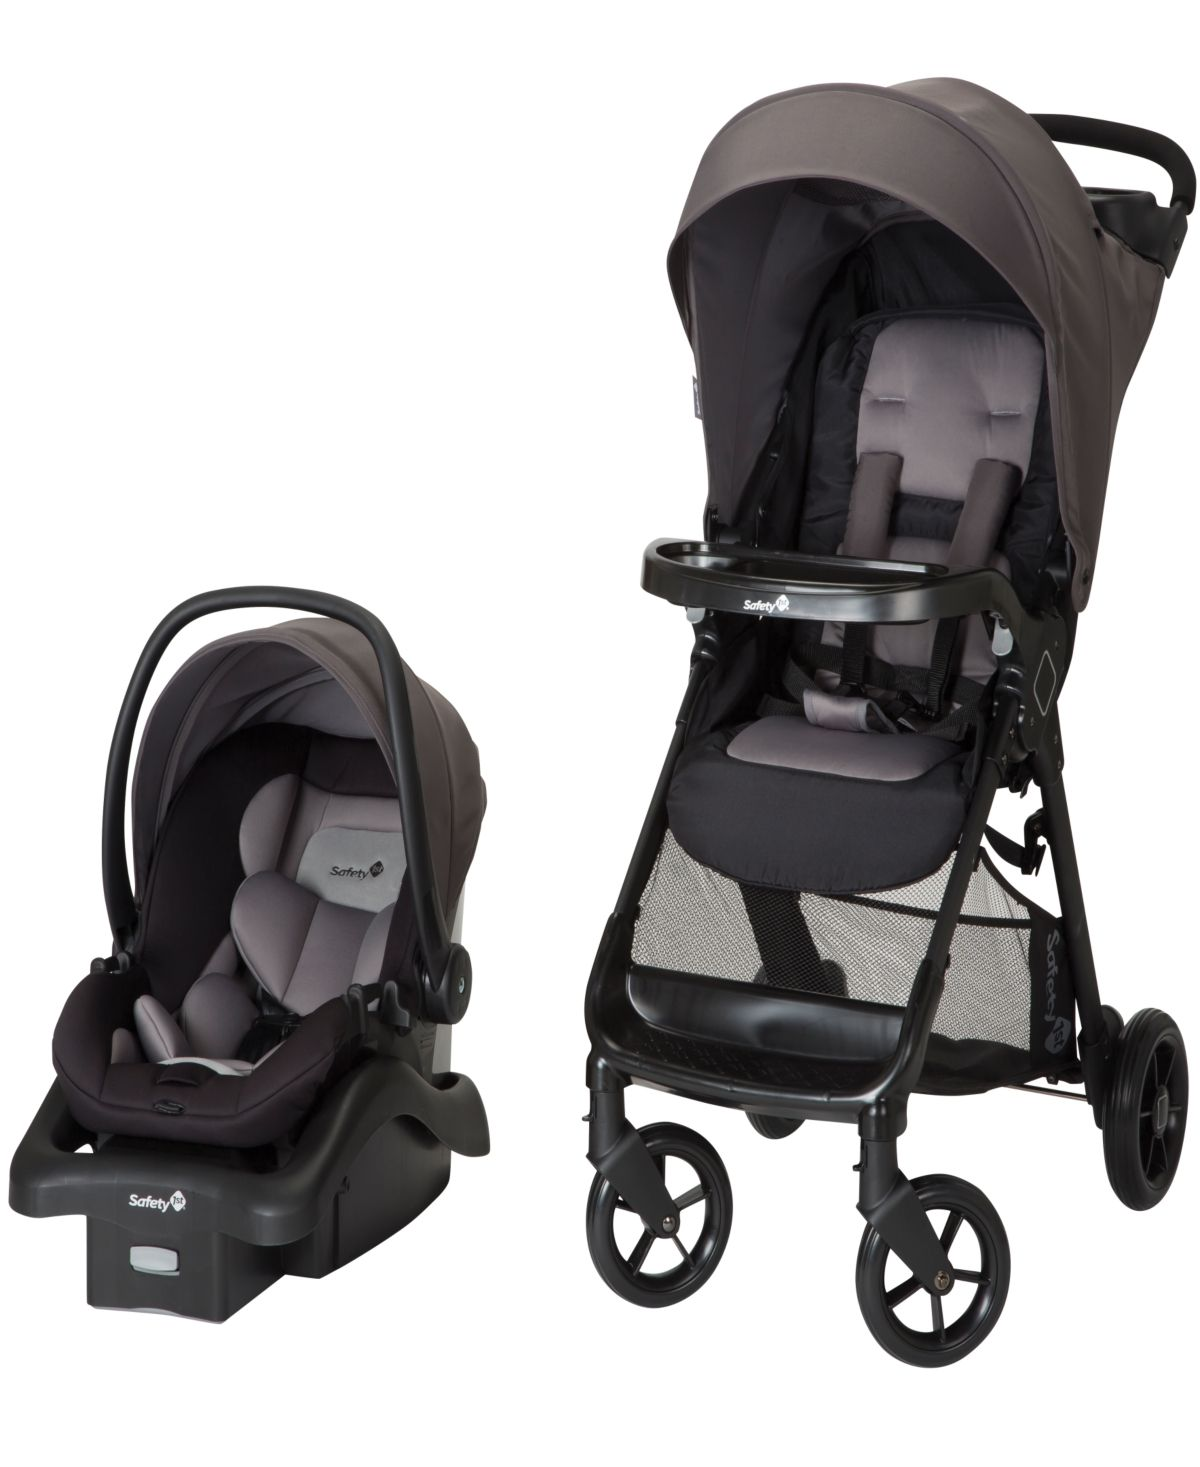 Cosco Safety 1st® Smooth Ride Travel System & Reviews